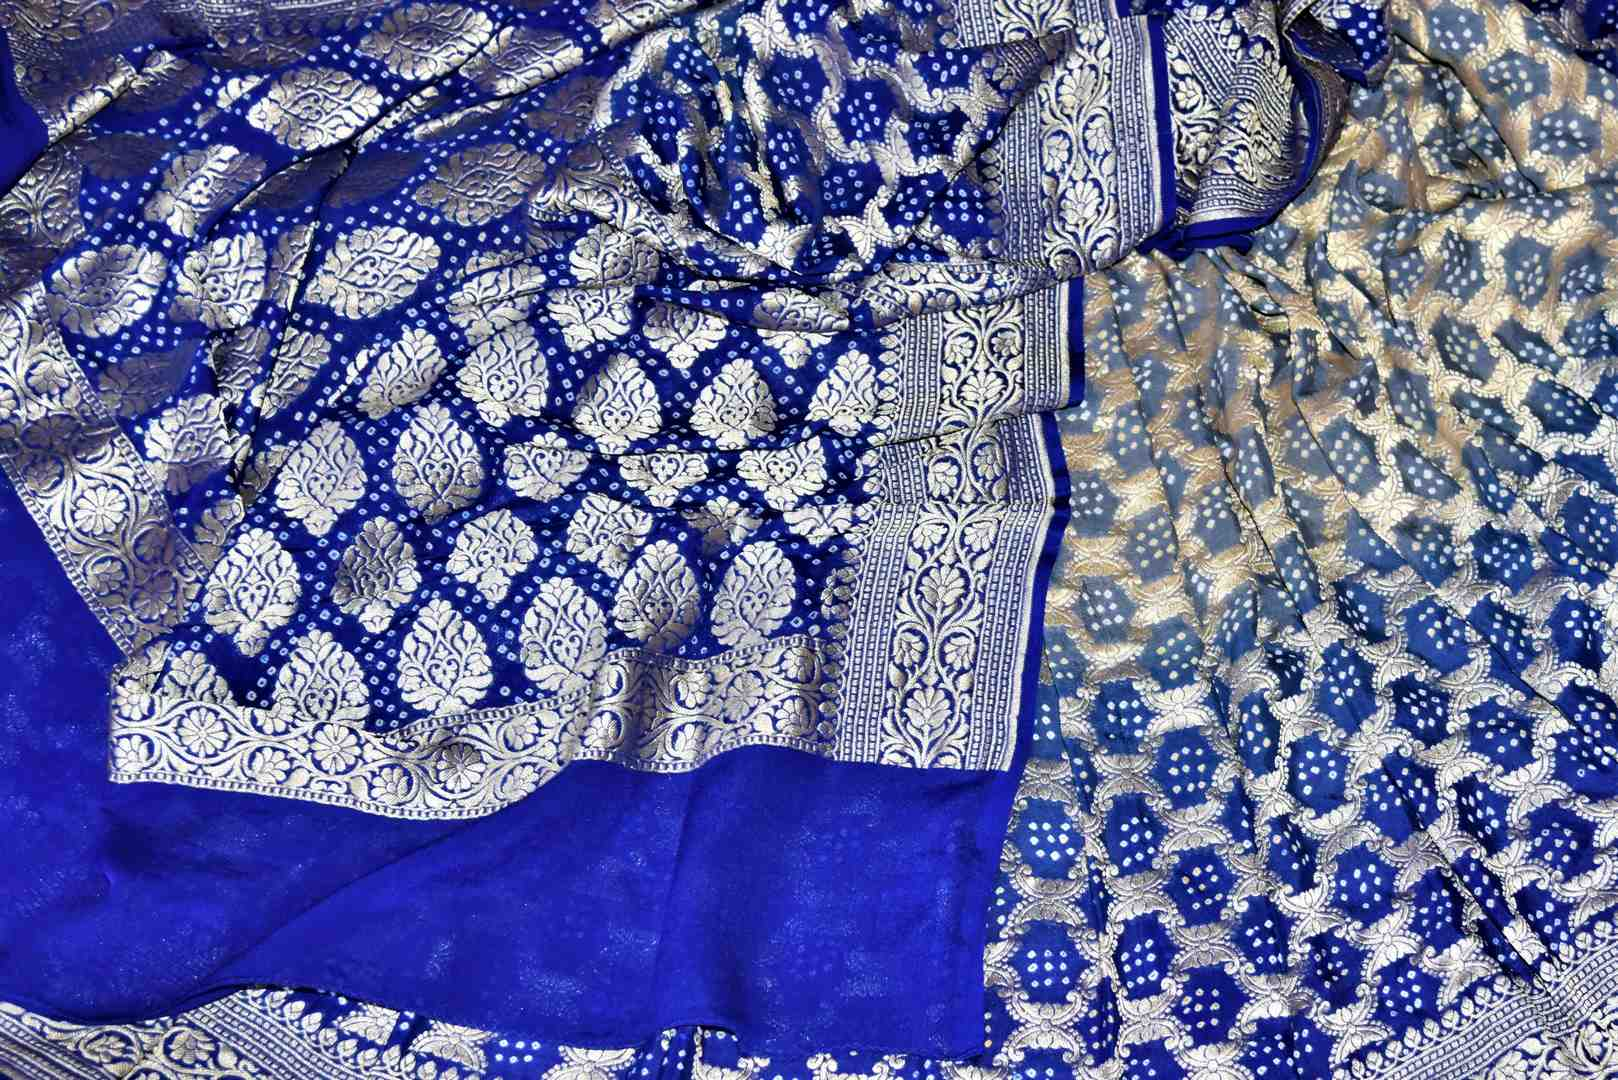 Buy stunning ombre blue bandhej georgette Banarasi sari online in USA. Spread your ethnic charm on special occasions with traditional Banarasi sarees, bandhej sarees, georgette sarees from Pure Elegance Indian fashion store in USA.-details